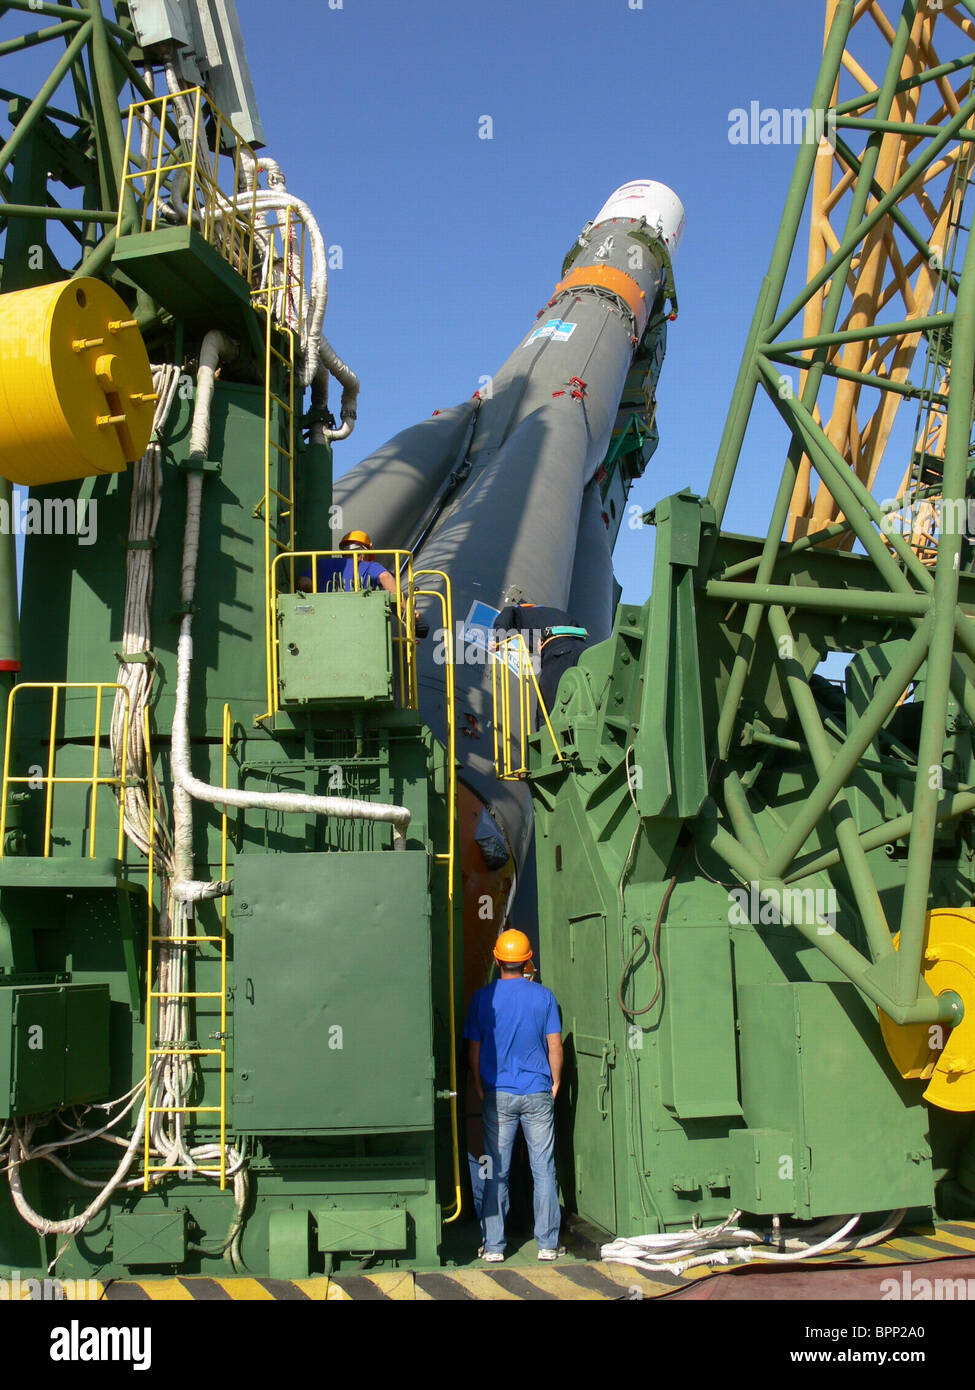 Soyuz-U rocket to launch from Baikonur Cosmodrome - Stock Image